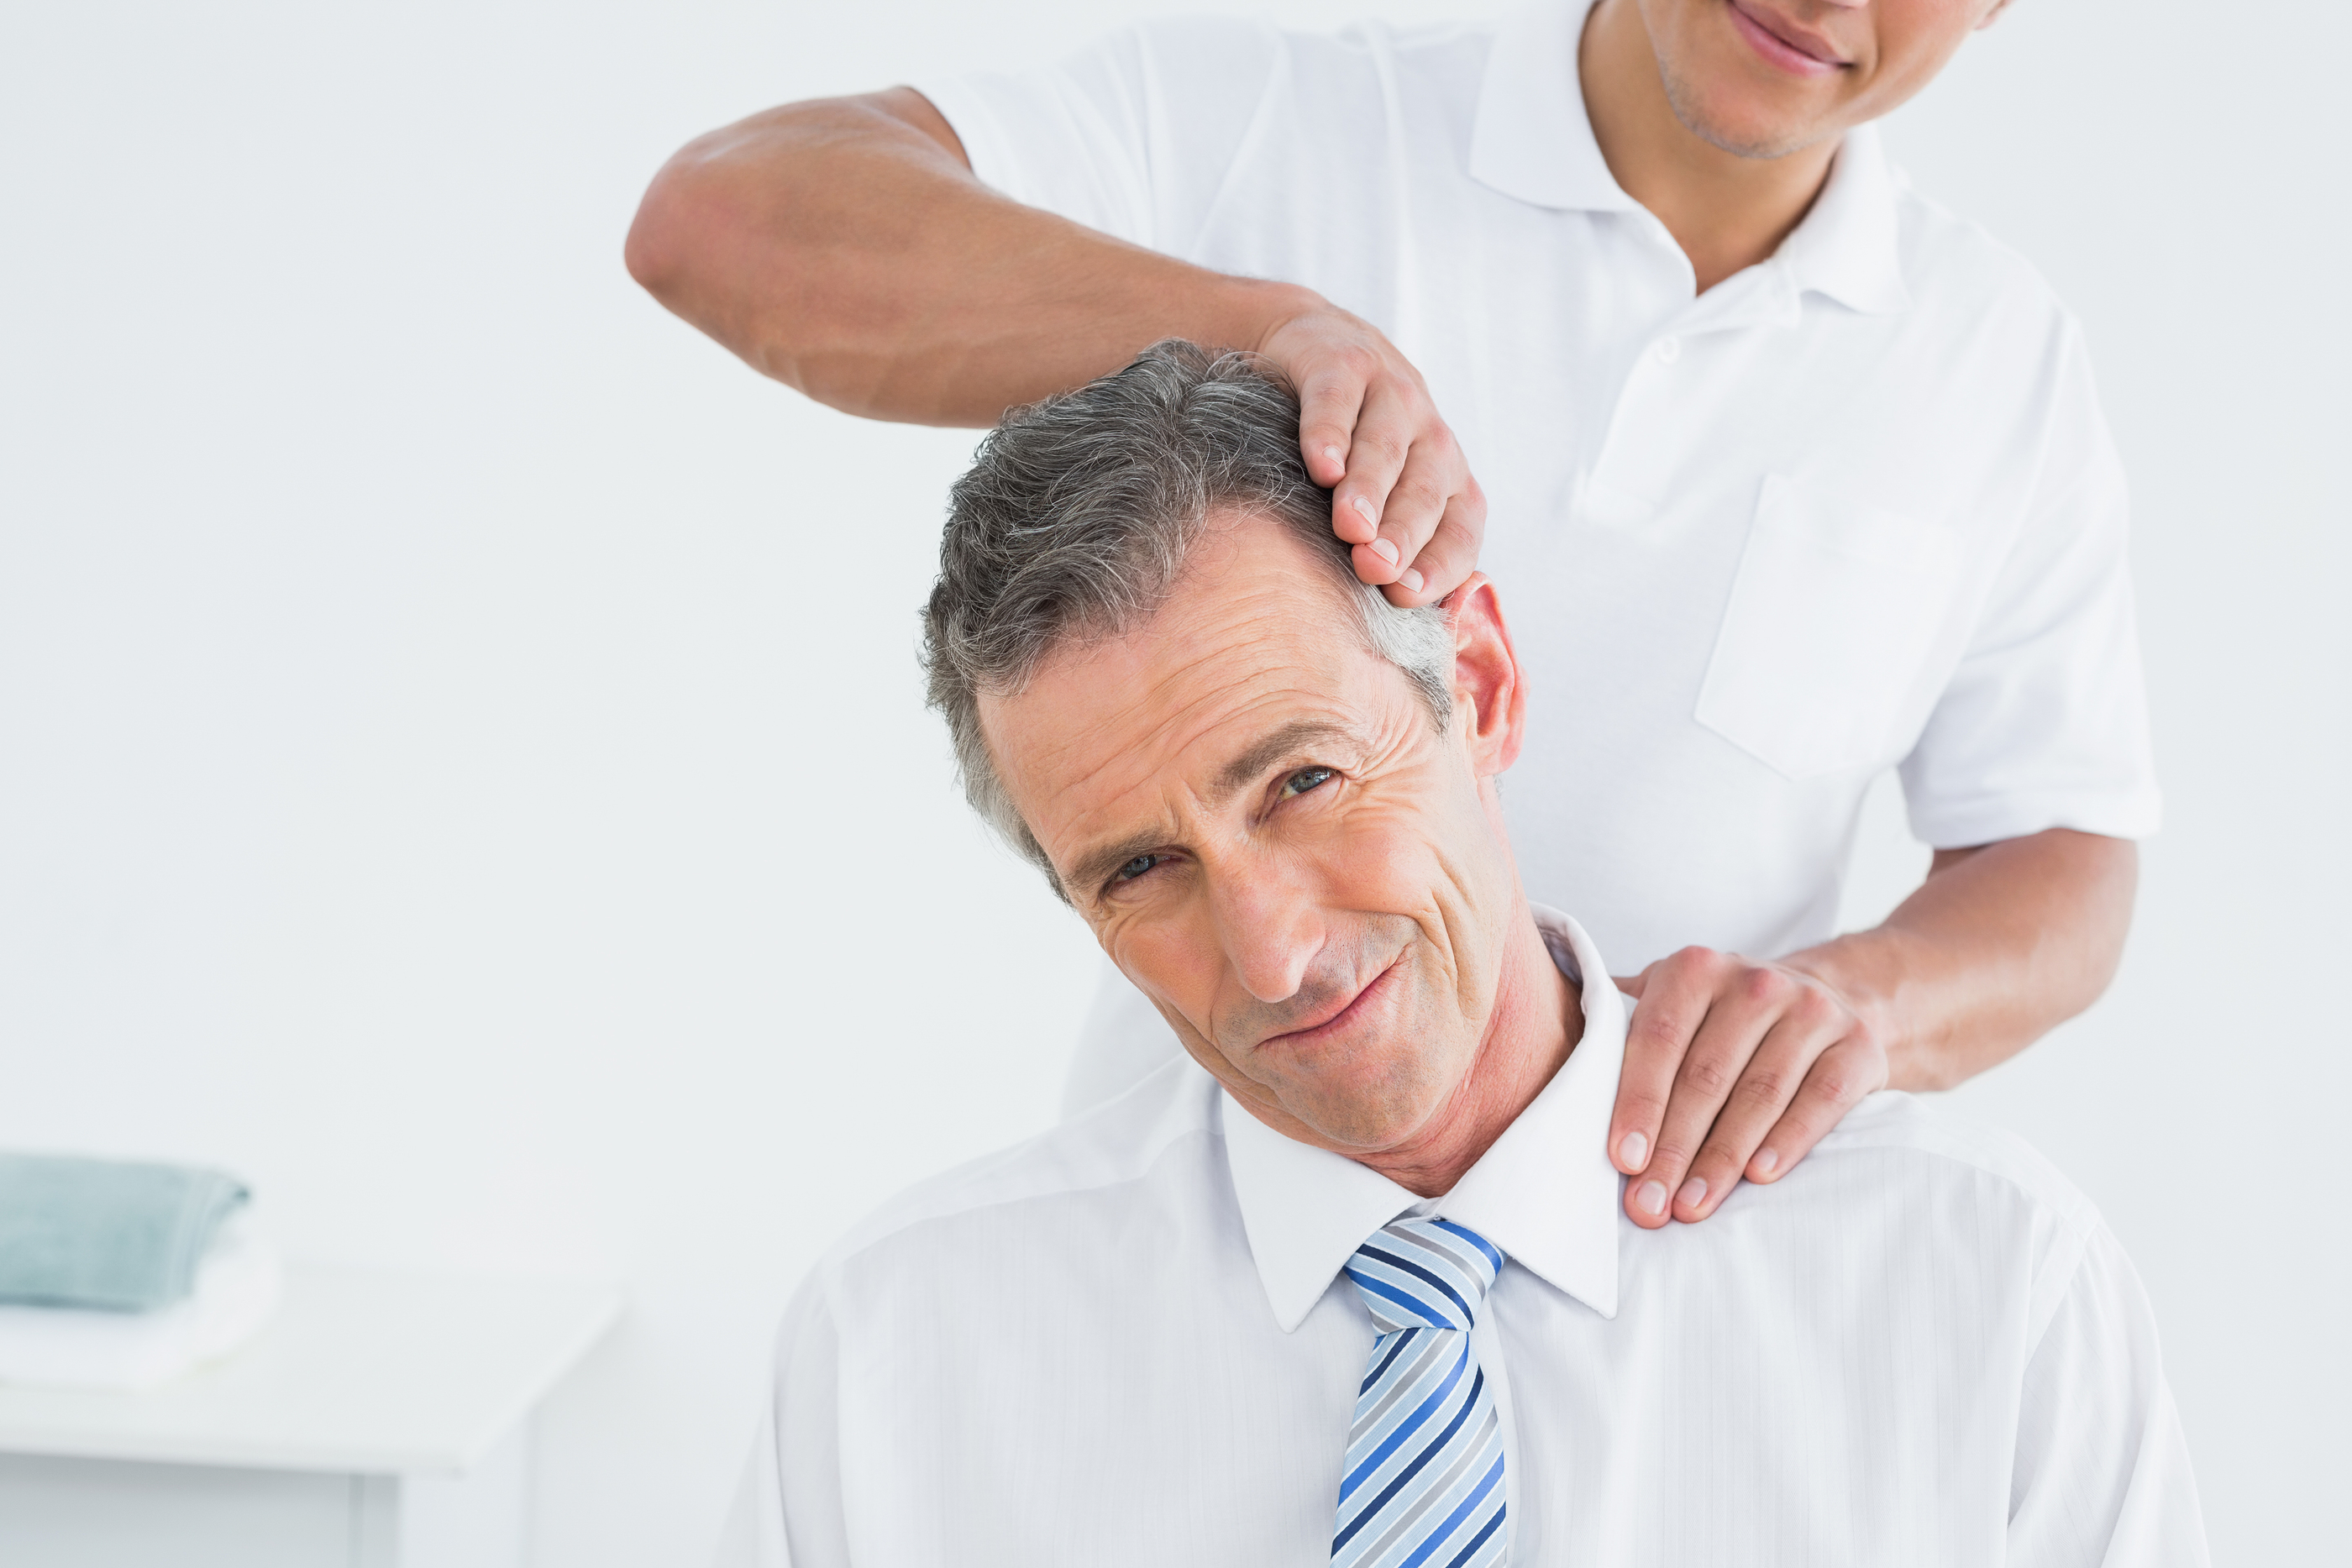 See a Chiropractor ASAP: Pains/Symptoms After a Car Crash